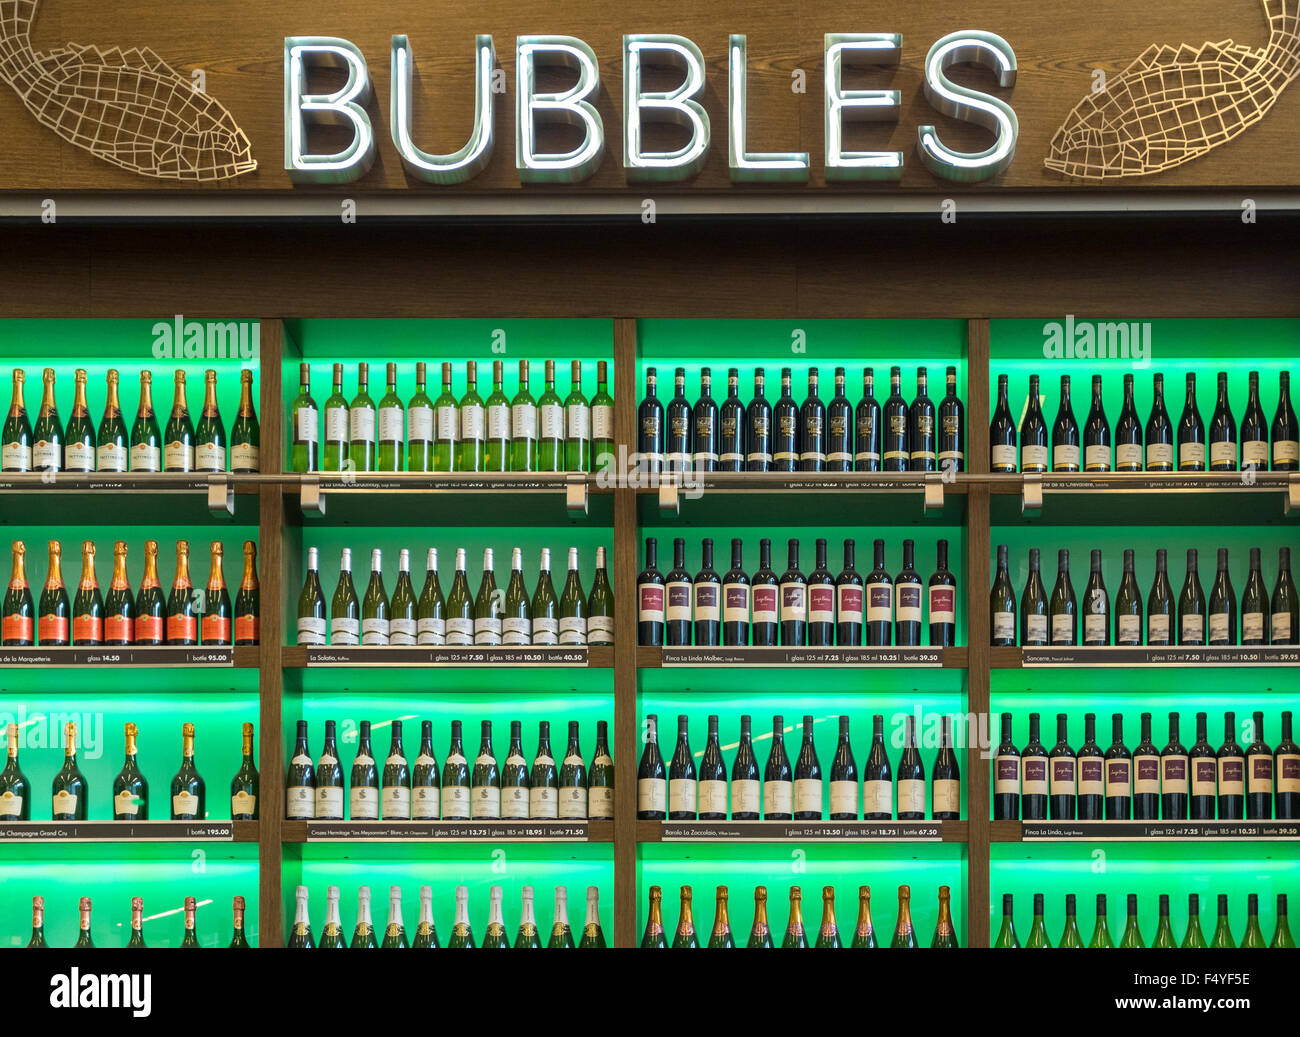 Bubbles Oyster and wine bar. Bottles of wine on display. Amsterdam Schiphol Airport. - Stock Image